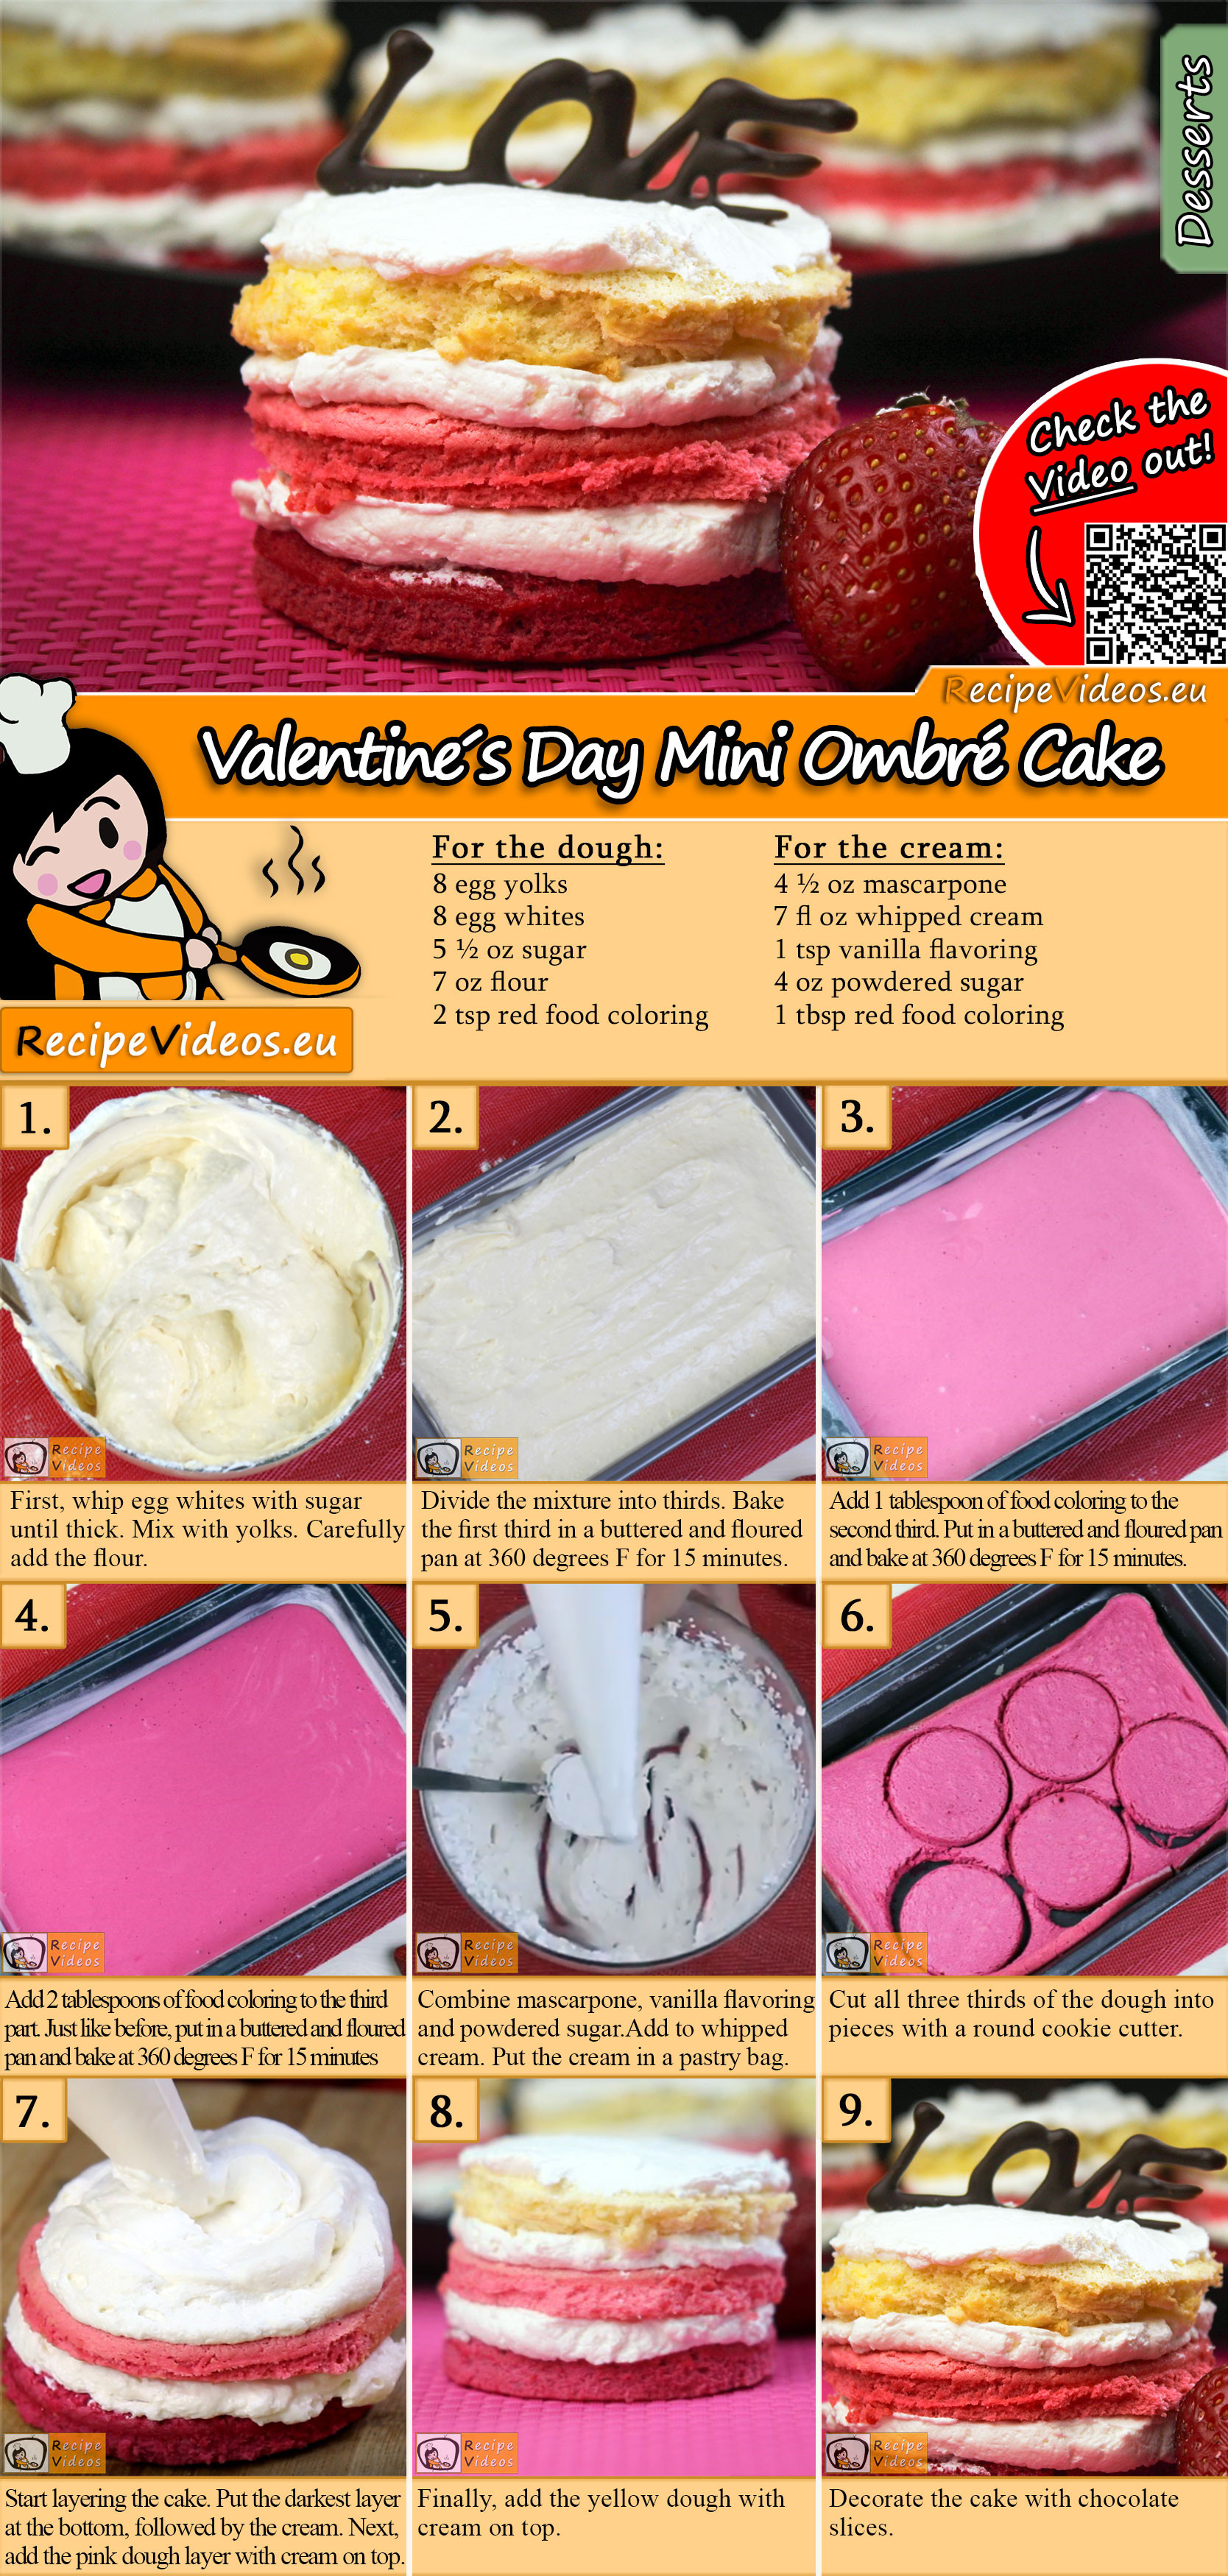 Valentine´s Day Mini Ombré Cake recipe with video